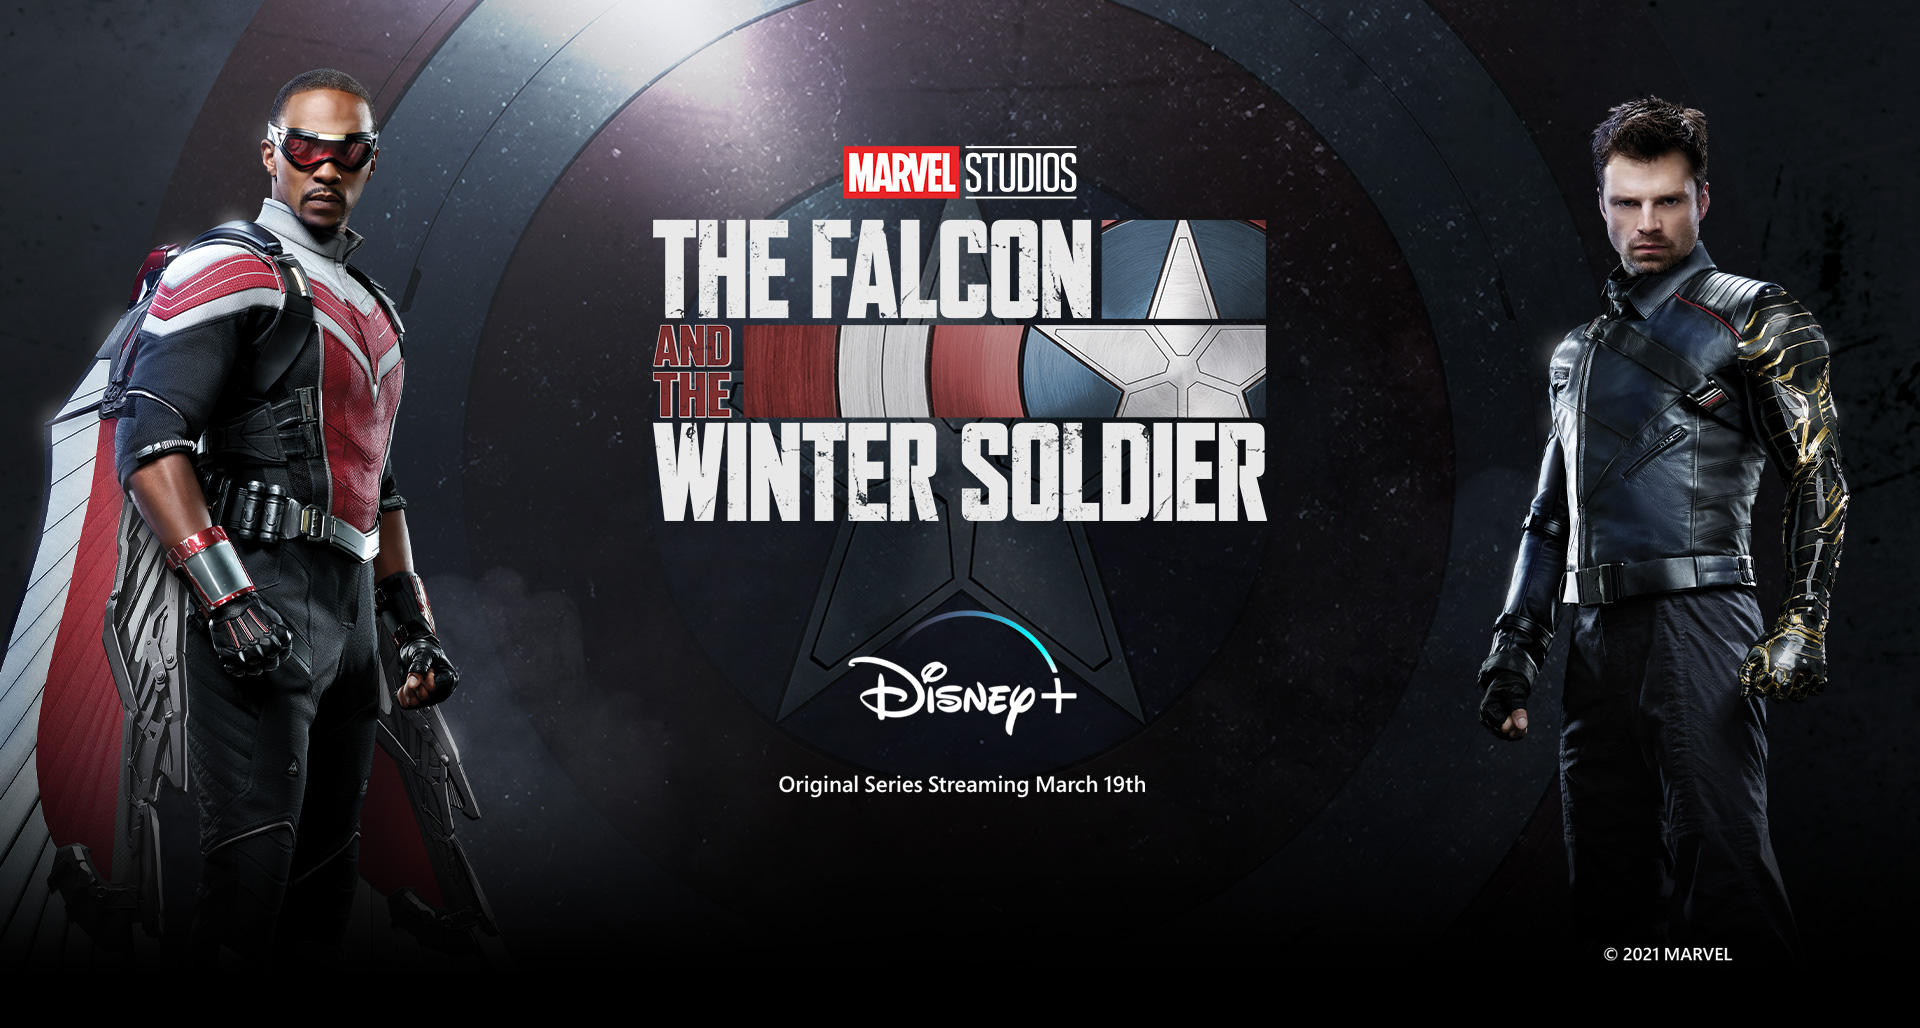 Marvel Studios' The Falcon and the Winter Soldier logo, flanked by the title heroes, with Disney+ logo